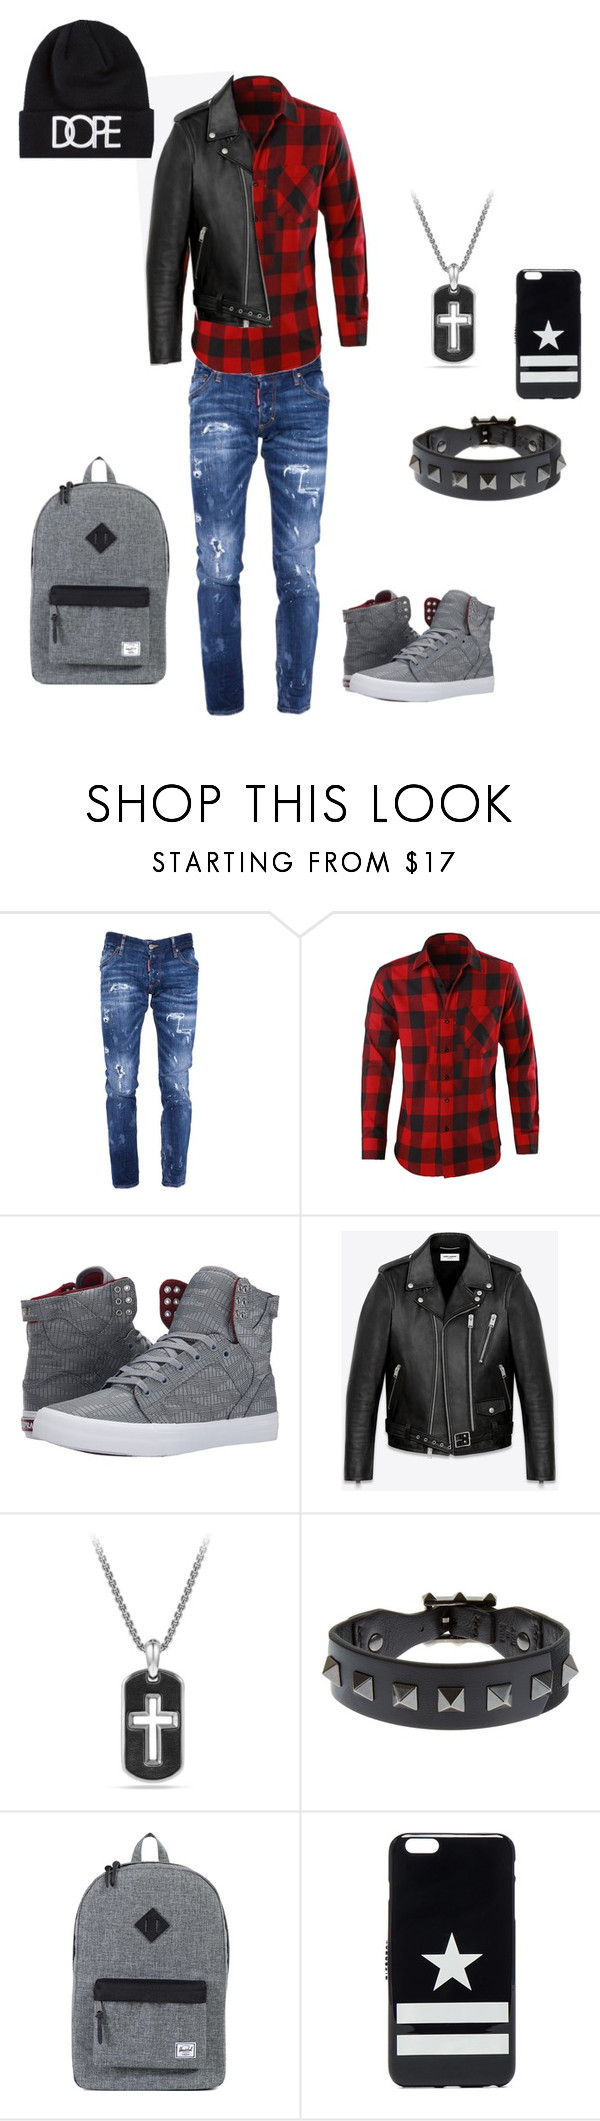 """Hotmen"" by remixshan ❤ liked on Polyvore featuring Dsquared2, Supra, Yves Saint Laurent, David Yurman, Valentino, Herschel Supply Co., Givenchy and Dope"